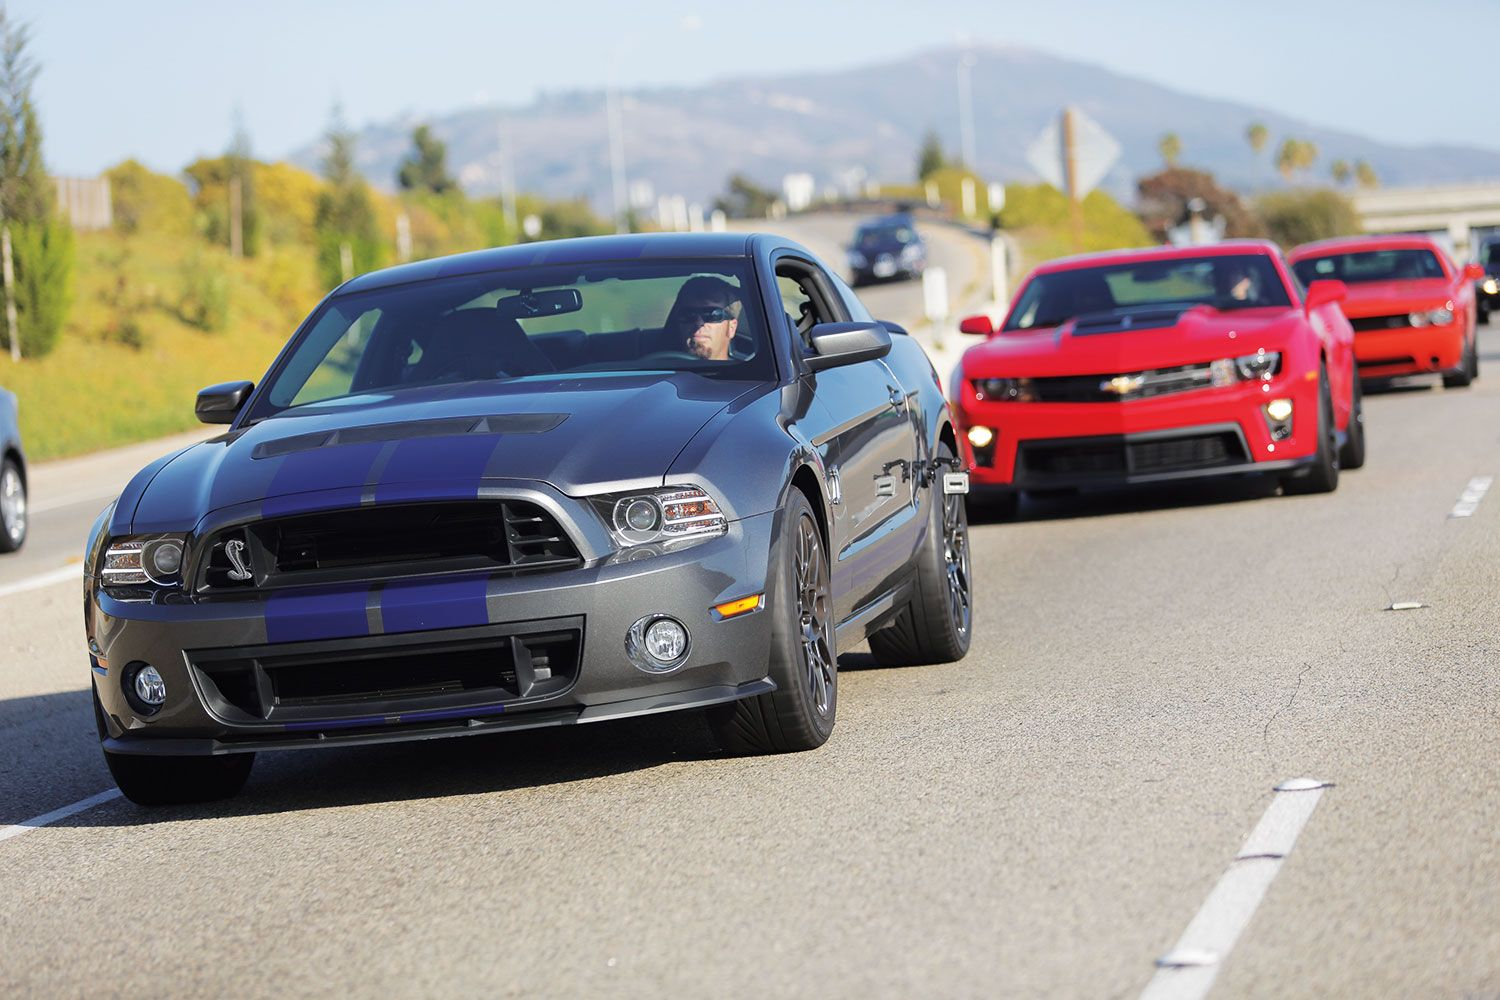 Chevy Camaro Zl1 Vs 2013 Dodge Challenger Srt8 Vs 2014